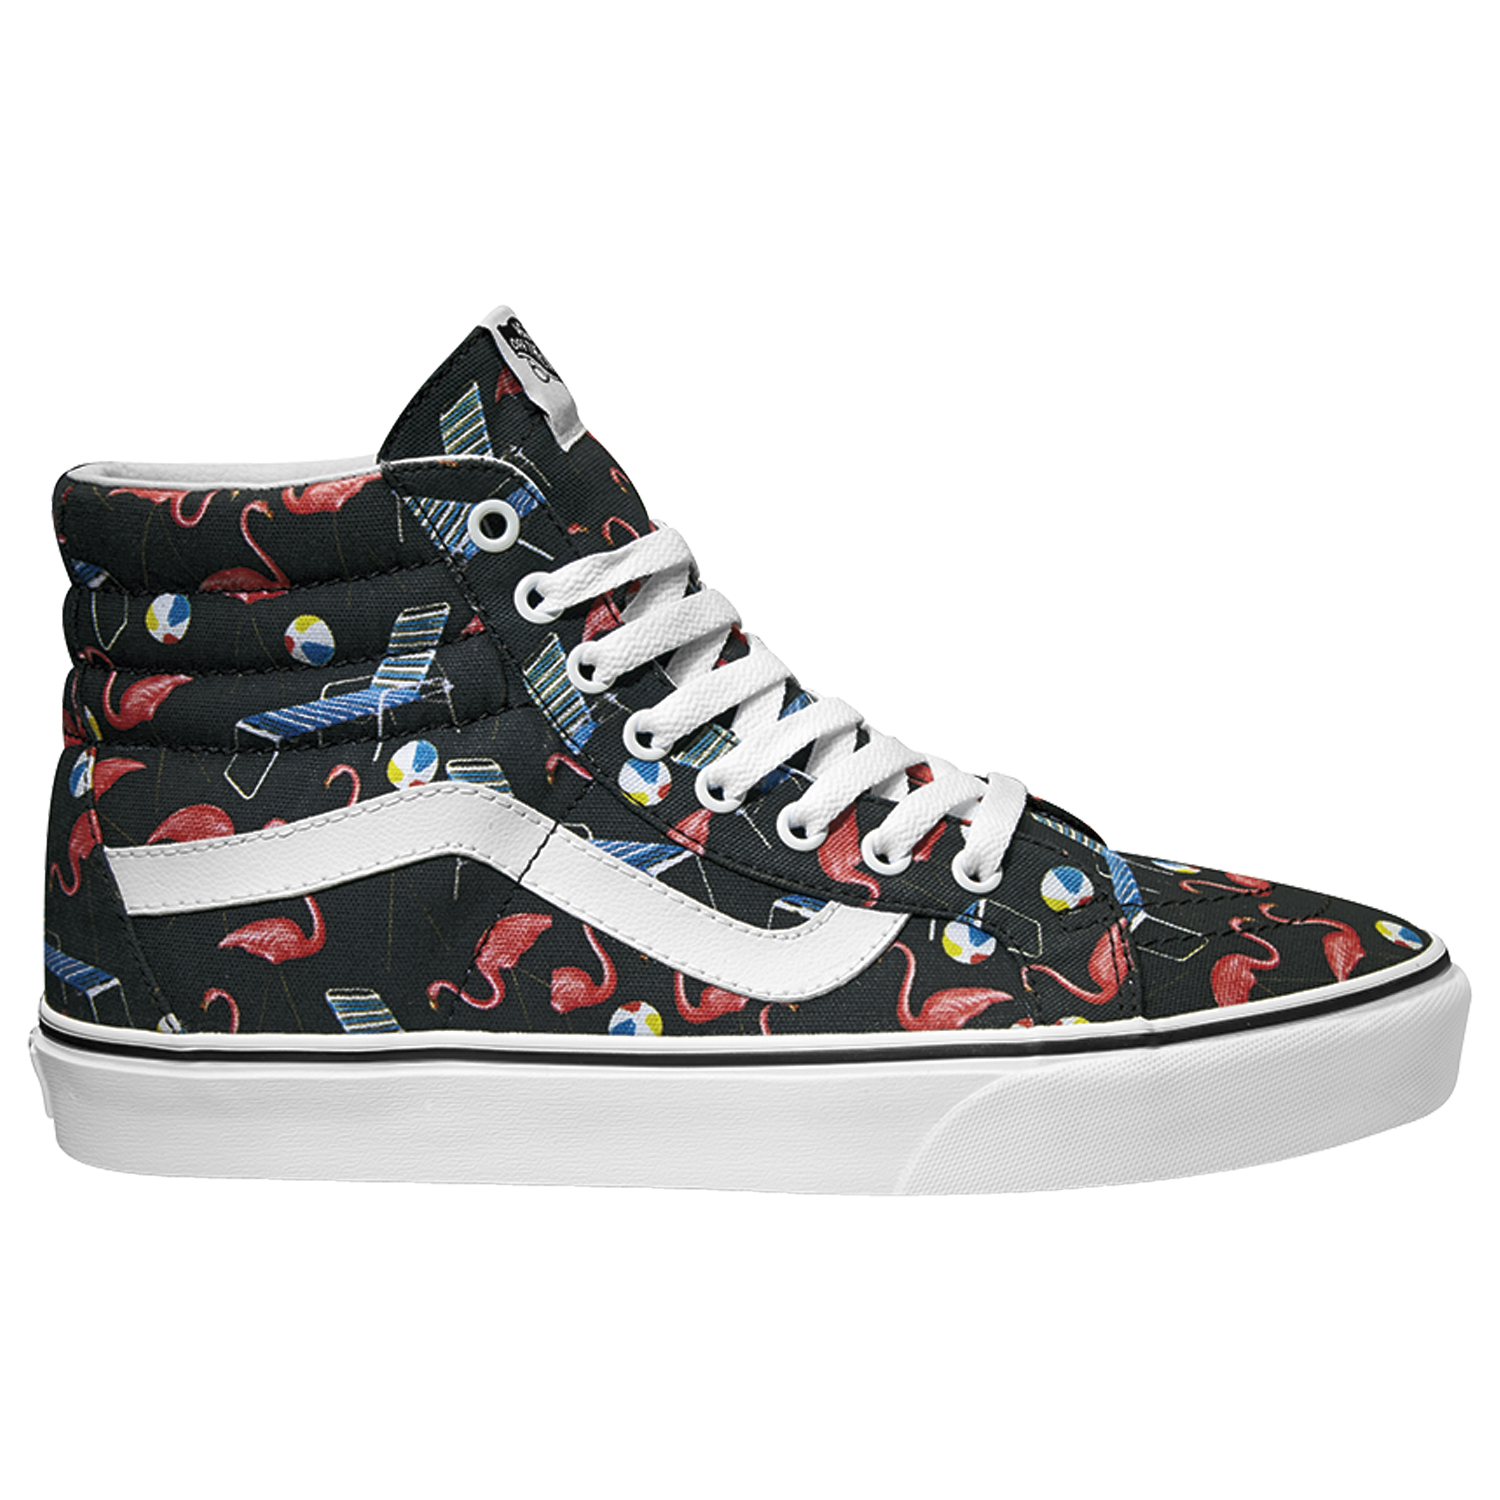 vans-sk8-hi-reis-pool-vibes-black-true-white-179-90